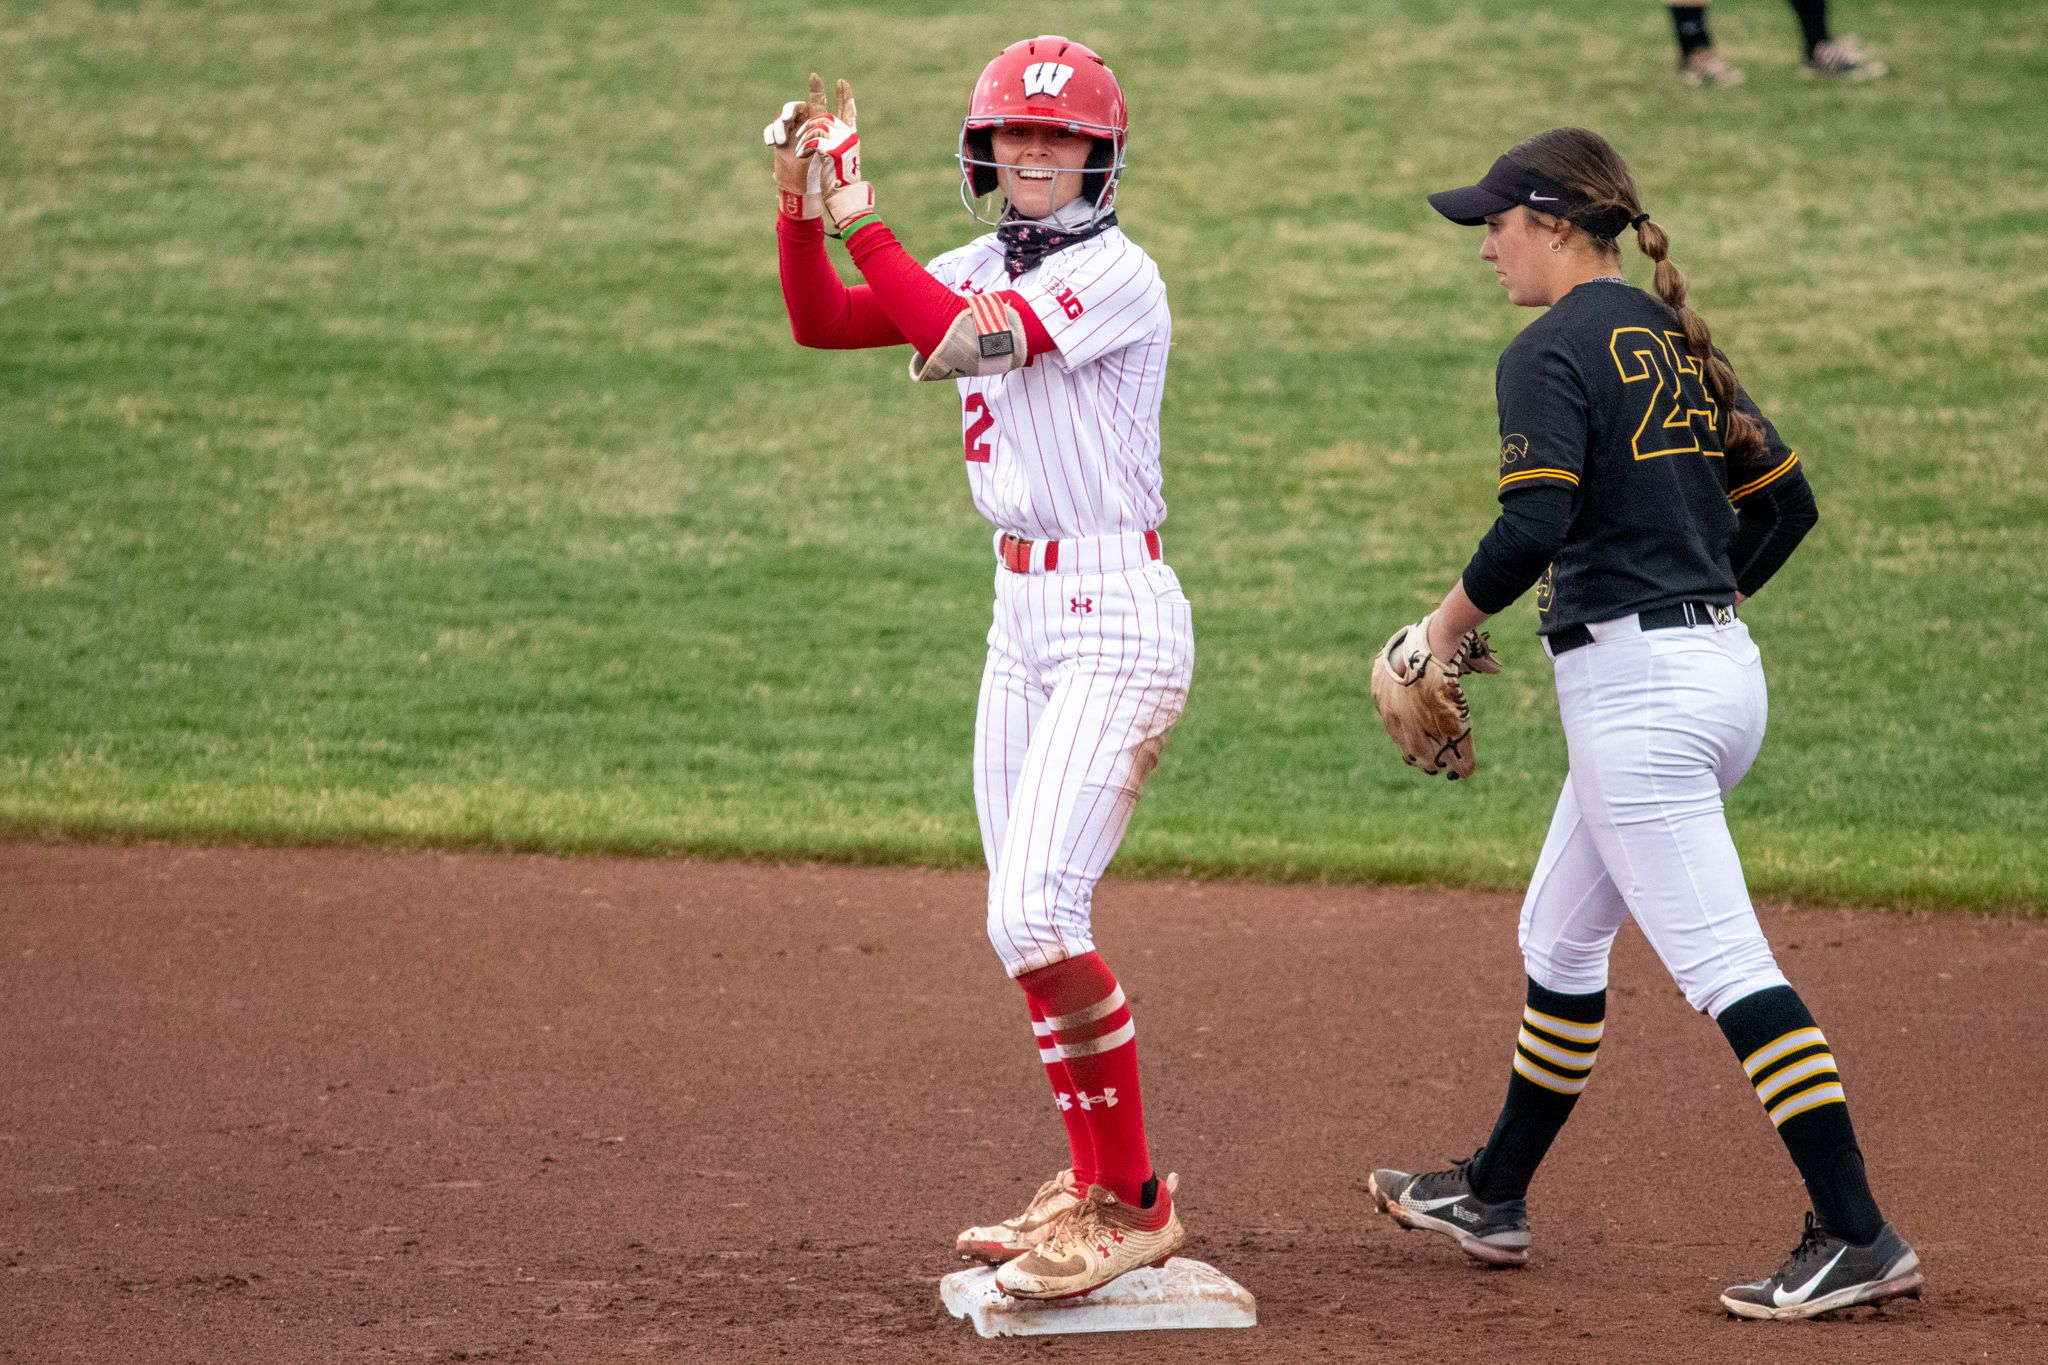 Wisconsin freshman Peyton Bannon, a Richmond-Burton graduate, is excelling for the Badgers in the leadoff spot this spring.